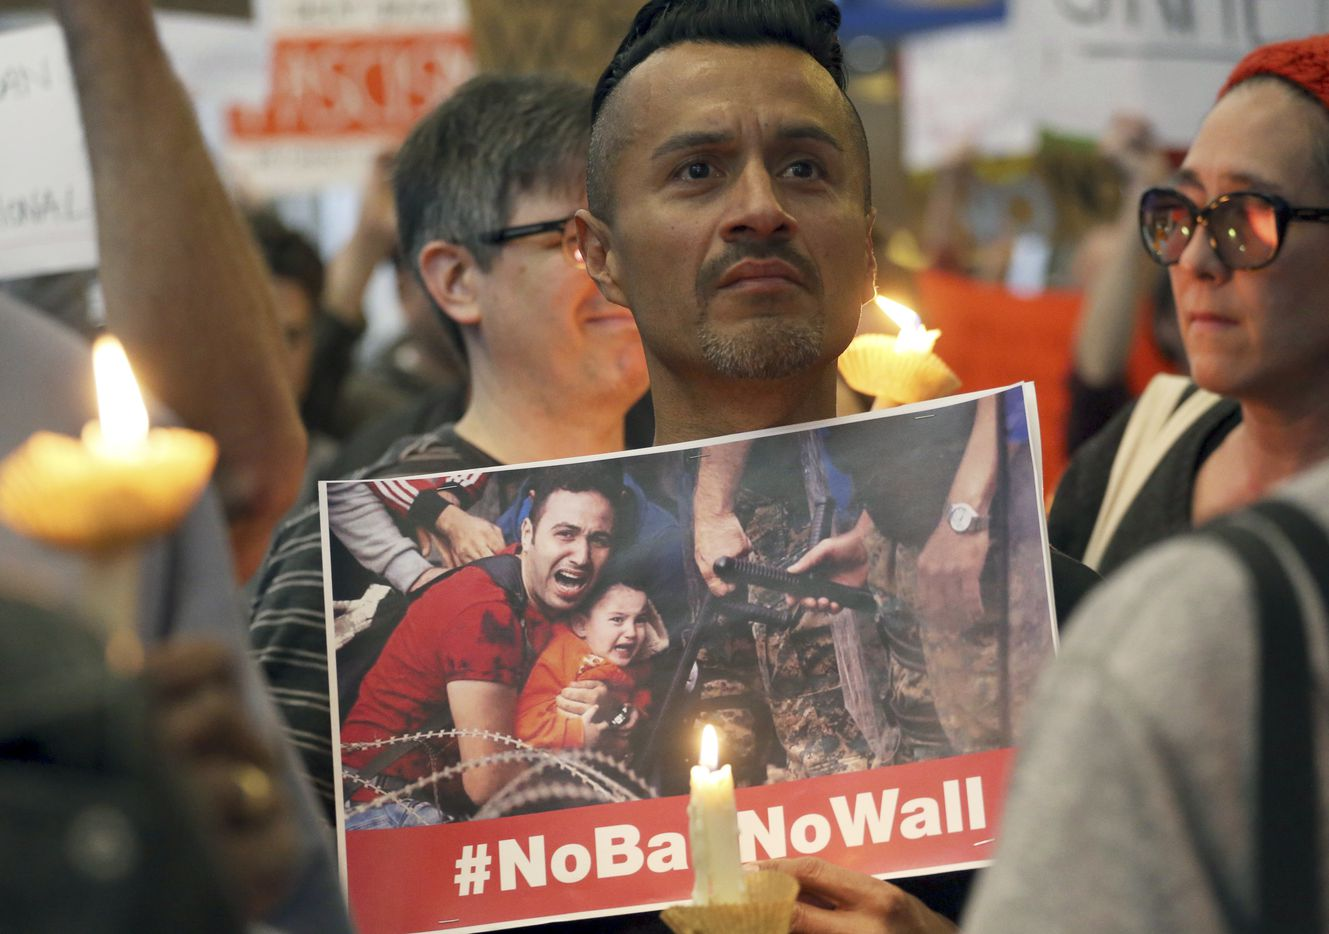 A man joins hundreds of demonstrators opposed to President Donald Trump's executive order barring entry to the U.S. by Muslims from certain countries at the Tom Bradley International Terminal at Los Angeles International Airport Saturday, Jan. 28, 2017, in Los Angeles.